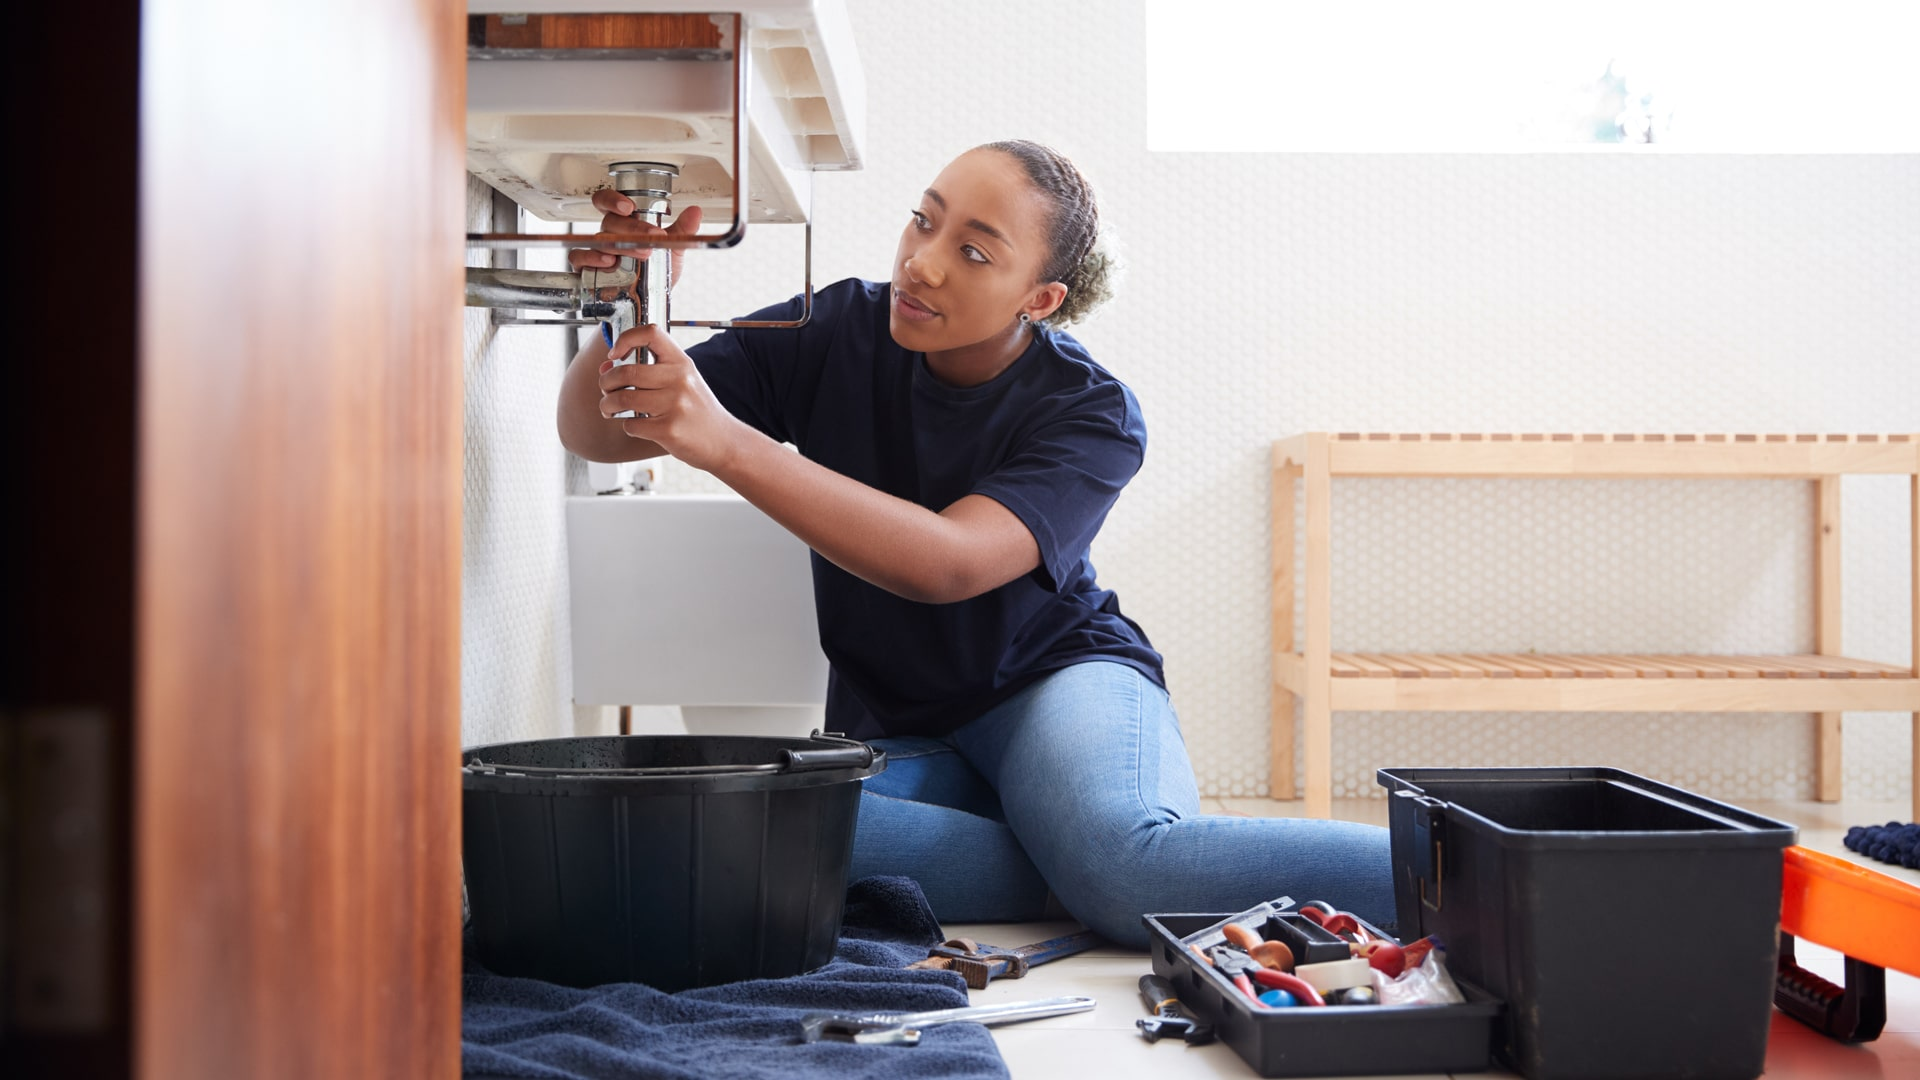 Female plumber working to fix leaking sink in home